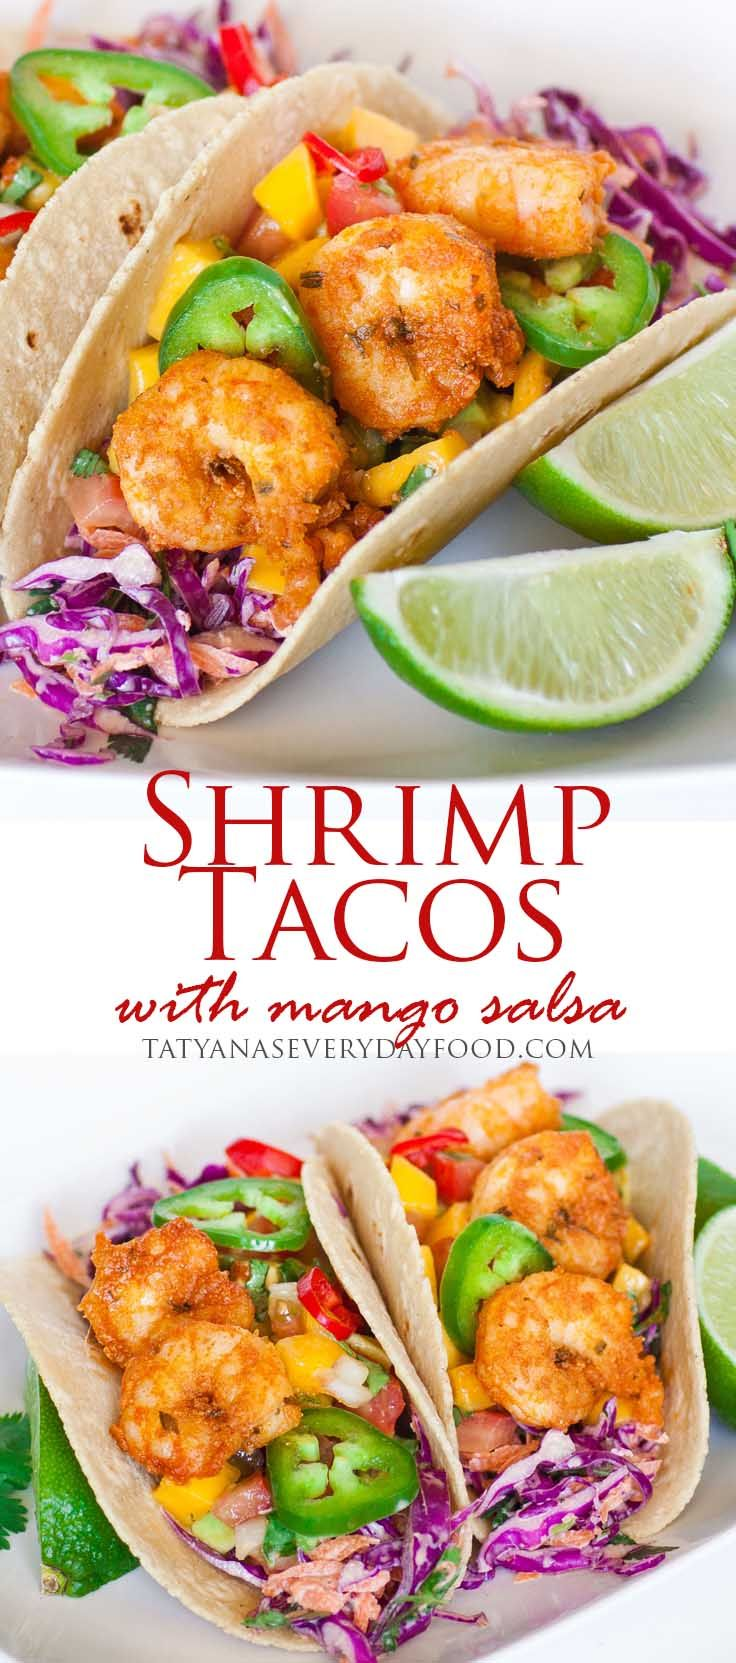 Plump Cajun shrimp with a creamy red cabbage slaw and a zesty mango-avocado salsa! These easy shrimp tacos are the perfect summer-time meal and will take you right back to the Caribbean! Enjoy them outdoors with a cold light beer or margarita! For all the recipe details, watch my video recipe by clicking on the […]